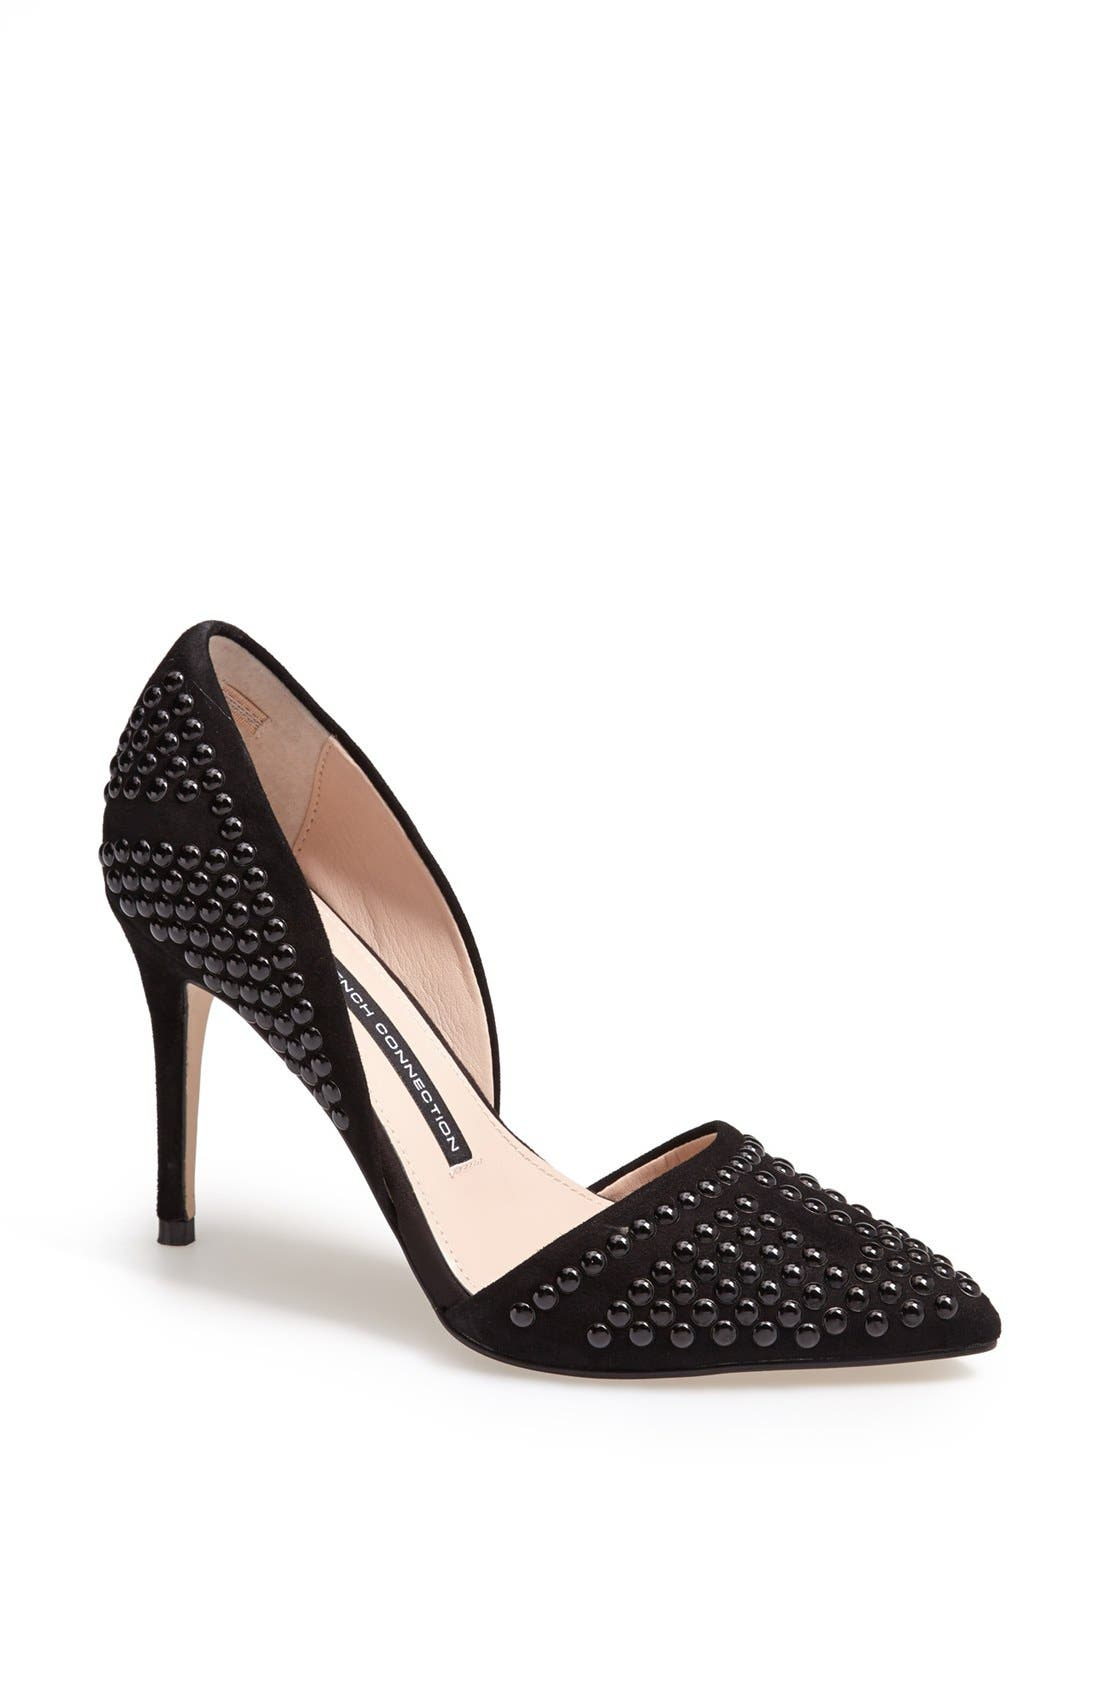 Alternate Image 1 Selected - French Connection 'Ellis' Studded Nubuck d'Orsay Pump